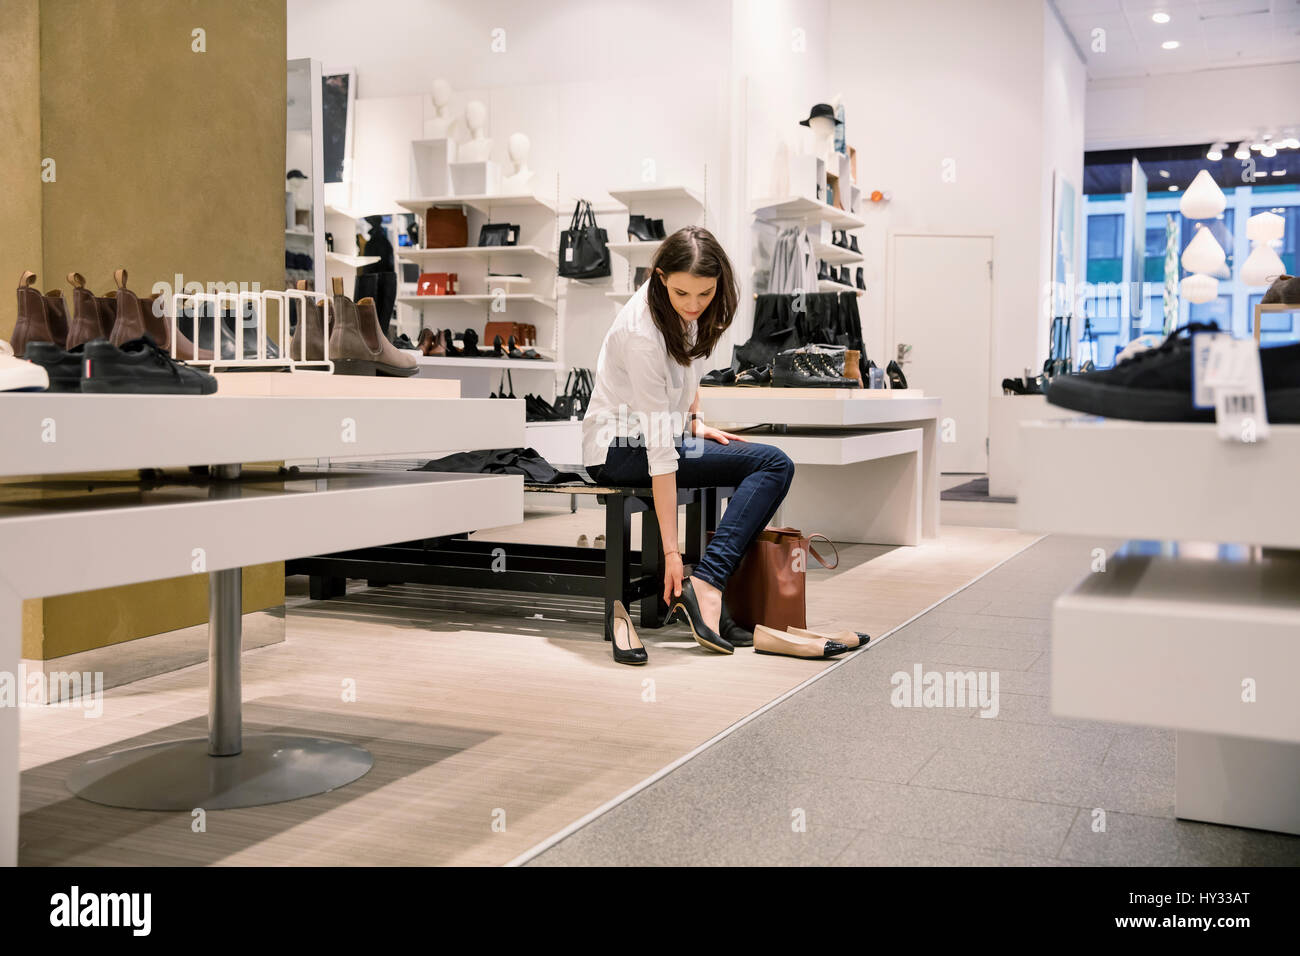 Sweden, Woman trying on shoes in store - Stock Image